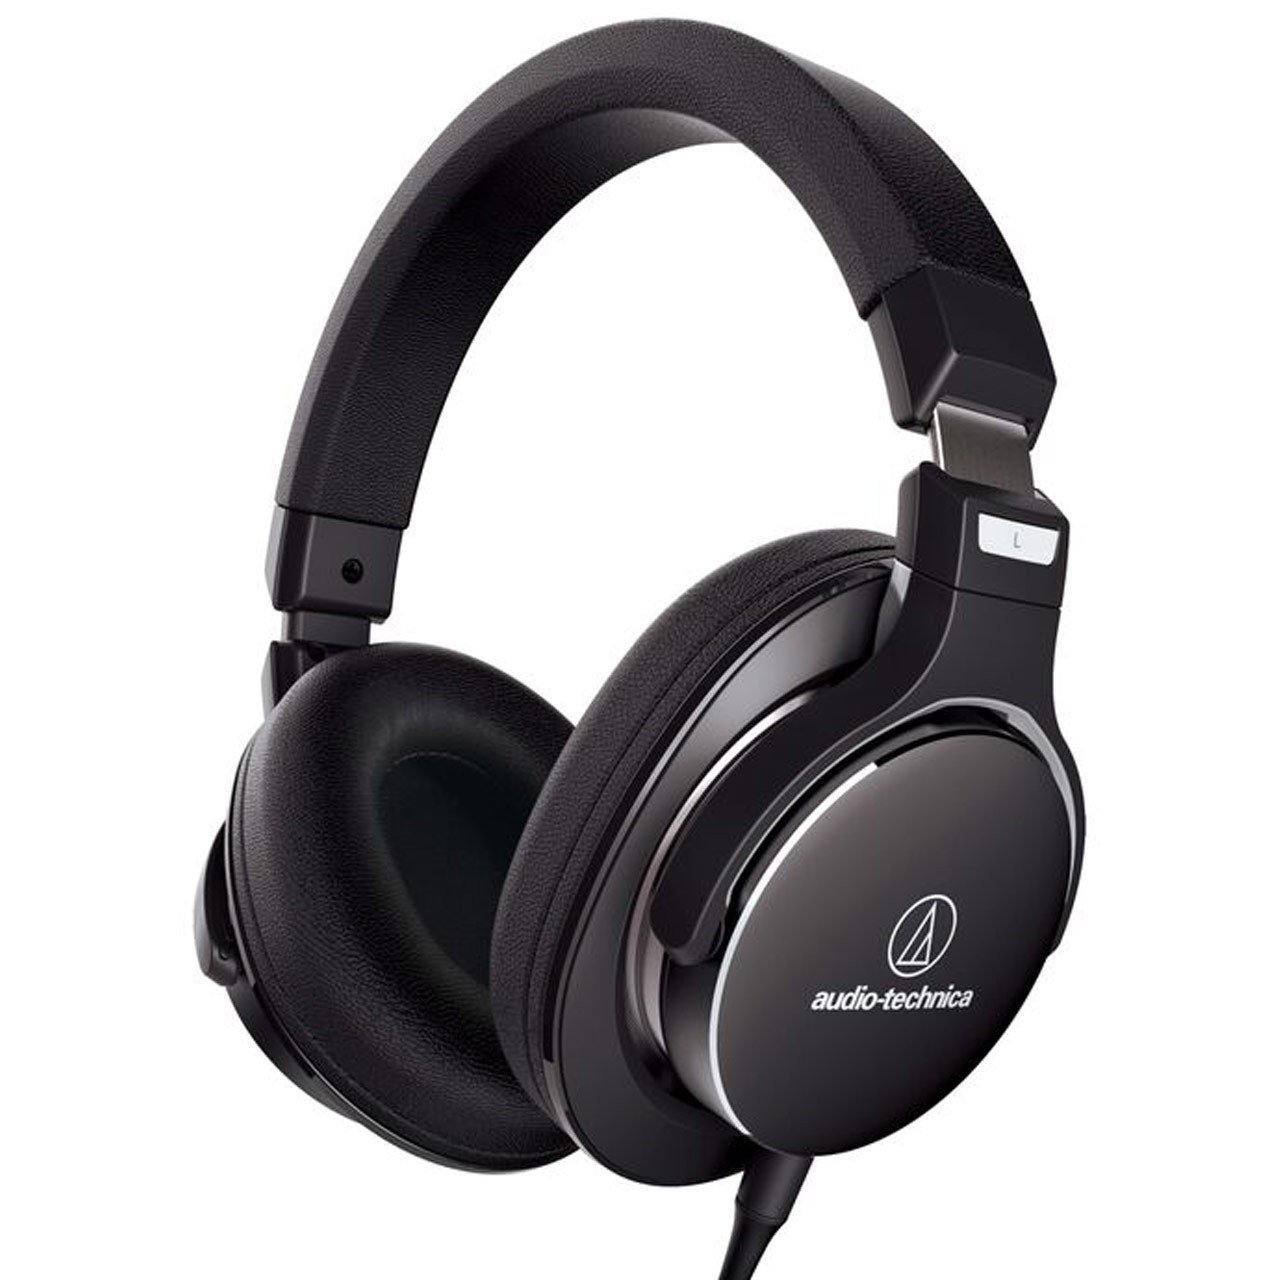 Noise Cancelling Headphones - Audio-Technica ATH-MSR7NC Active Noise Cancellation Headphones